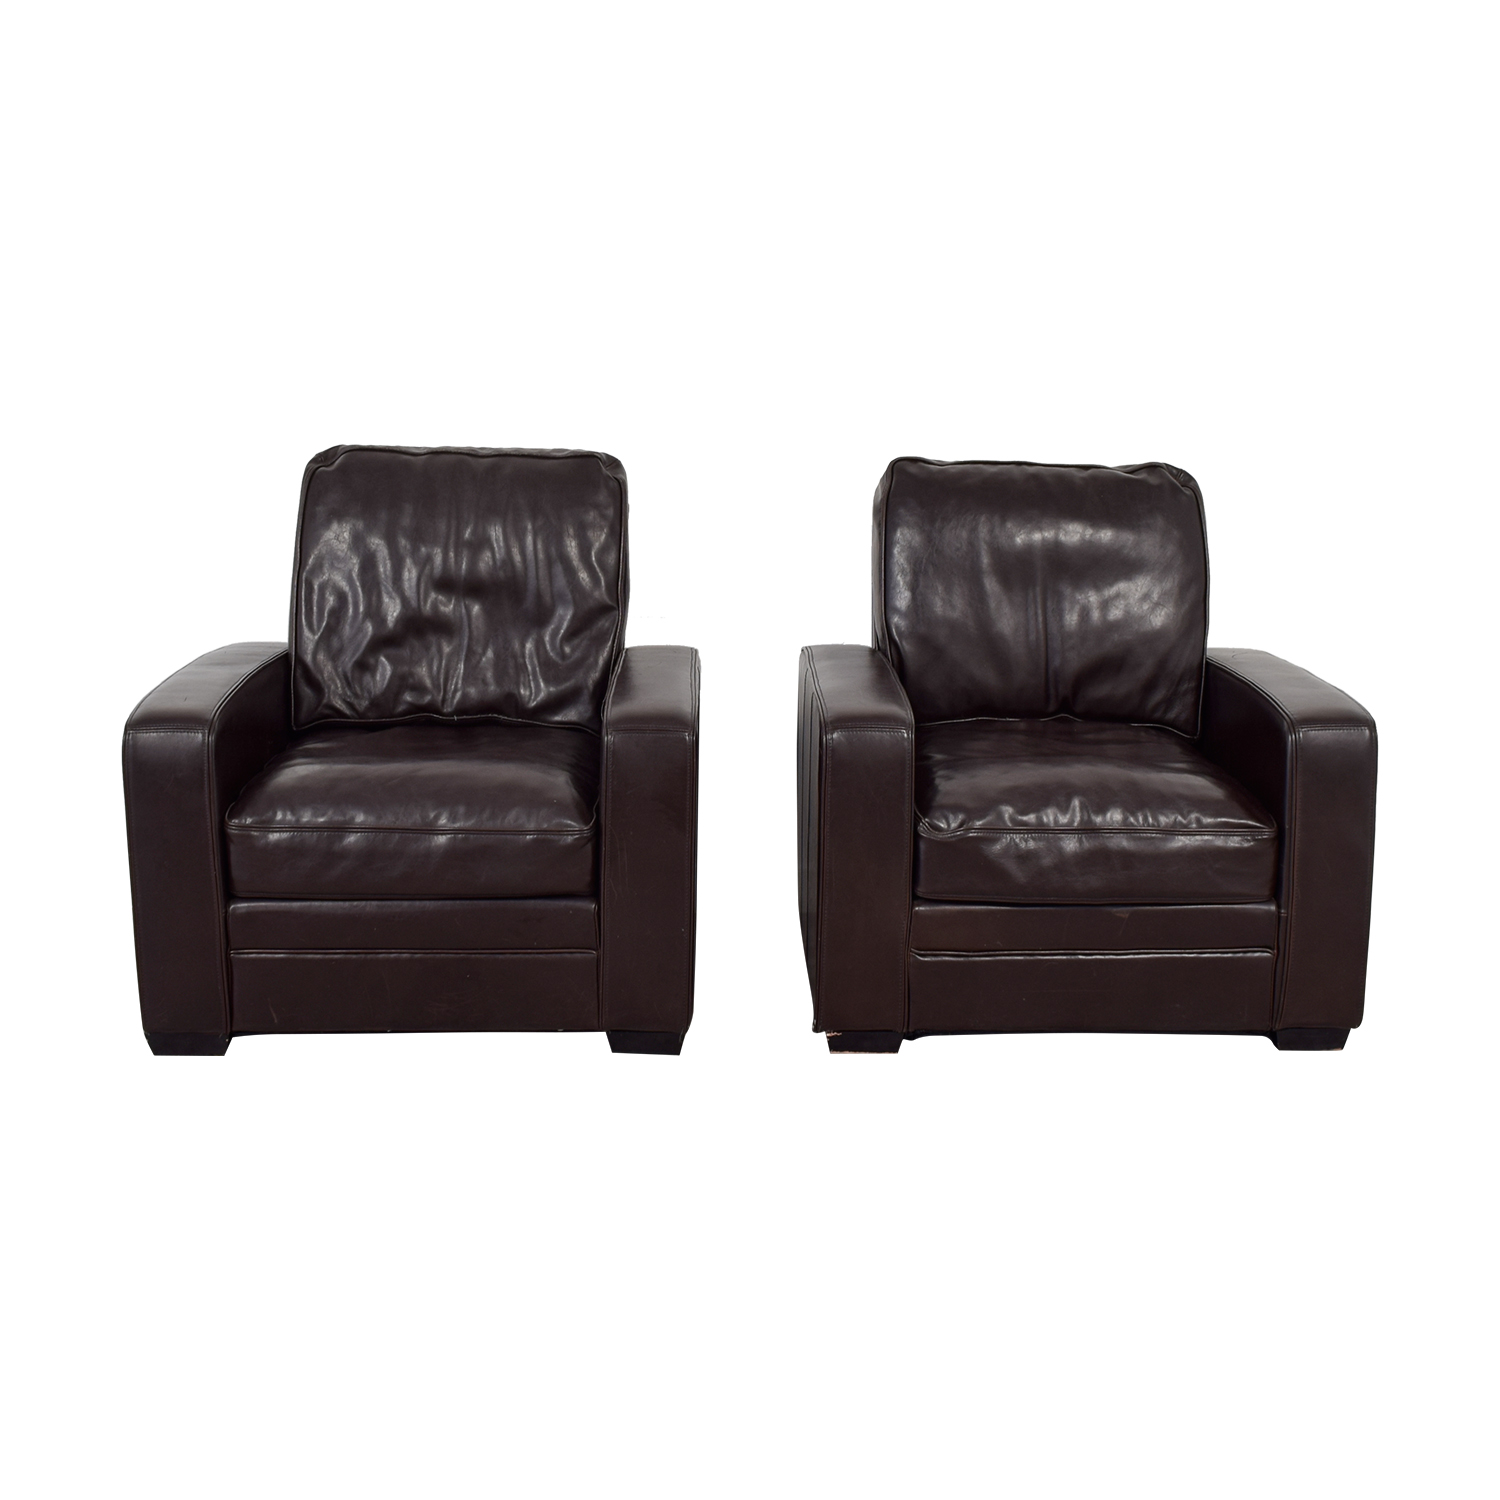 Exceptionnel Overstock Overstock Brown Leather Accent Chairs For Sale